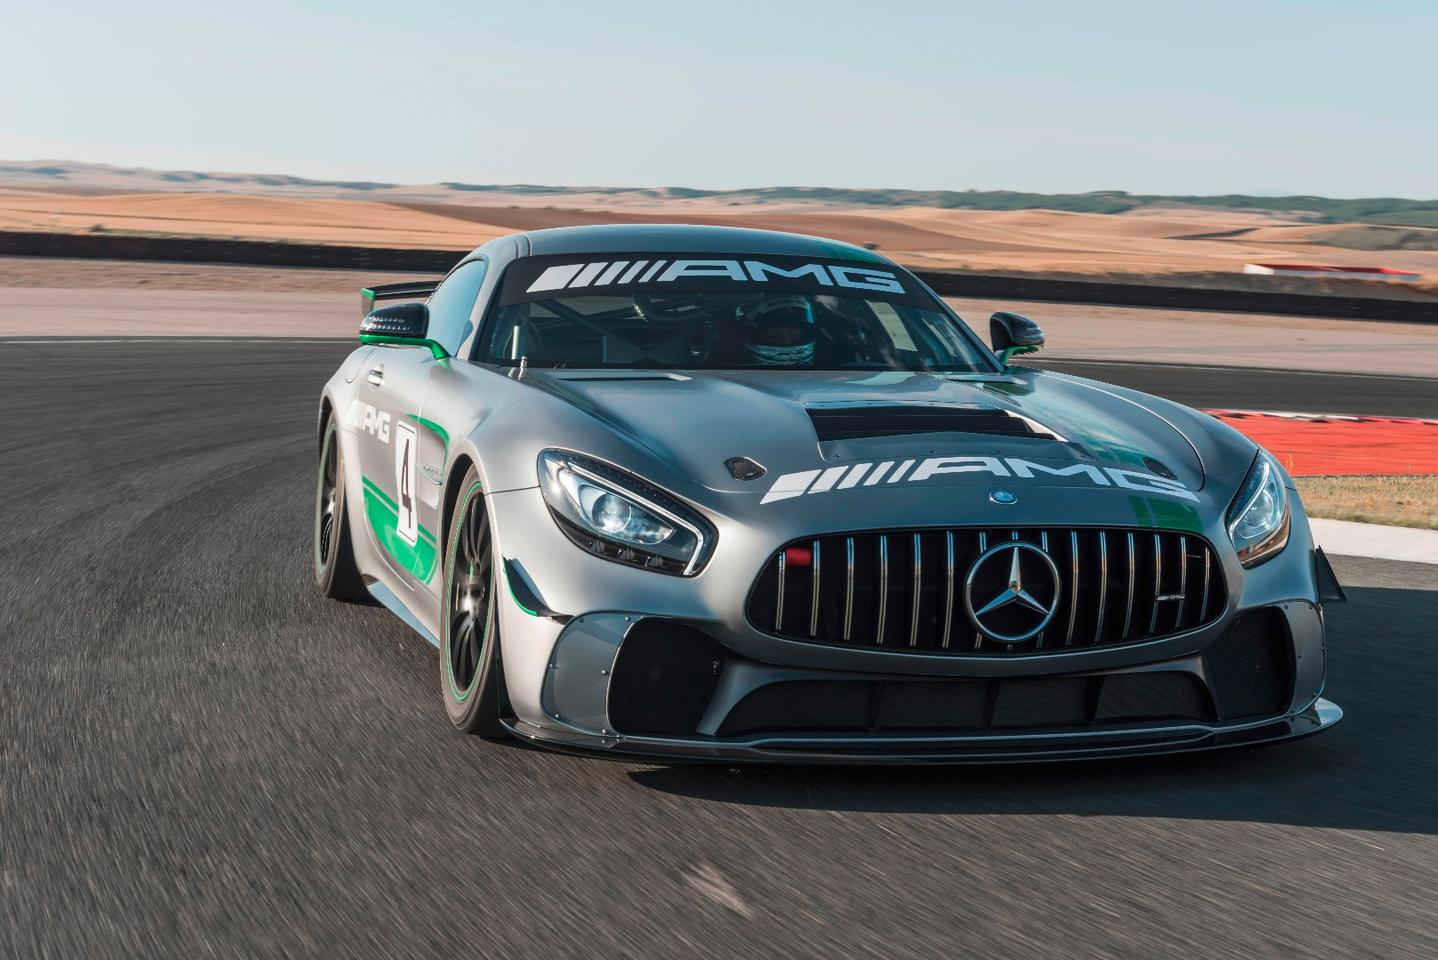 The AMG GT4 looks similar to the GT R, but it's a much more focused beast